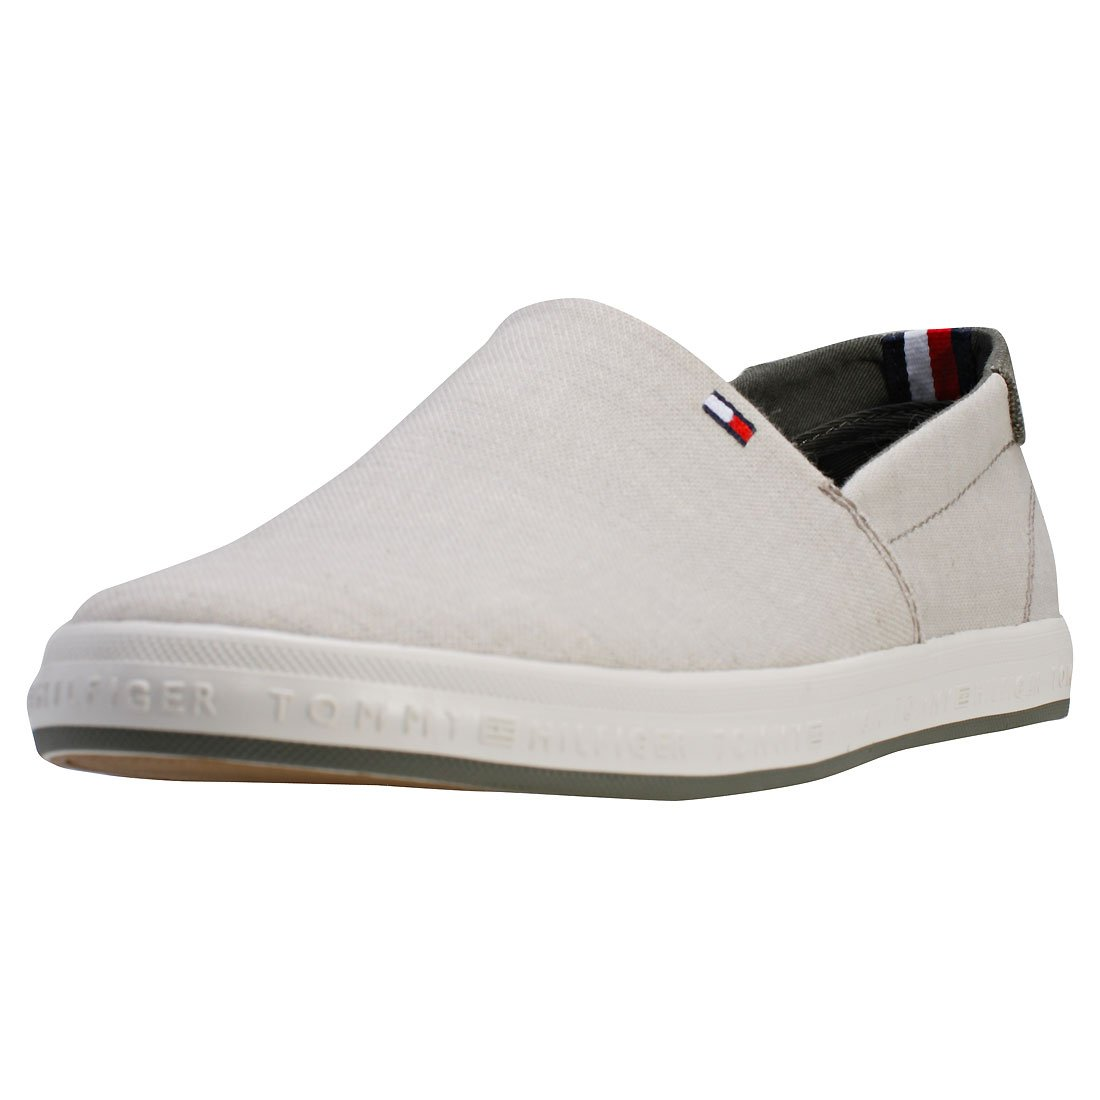 Tommy Hilfiger Zapatillas Zapatillas Slip on Denim 40 EU|Gris